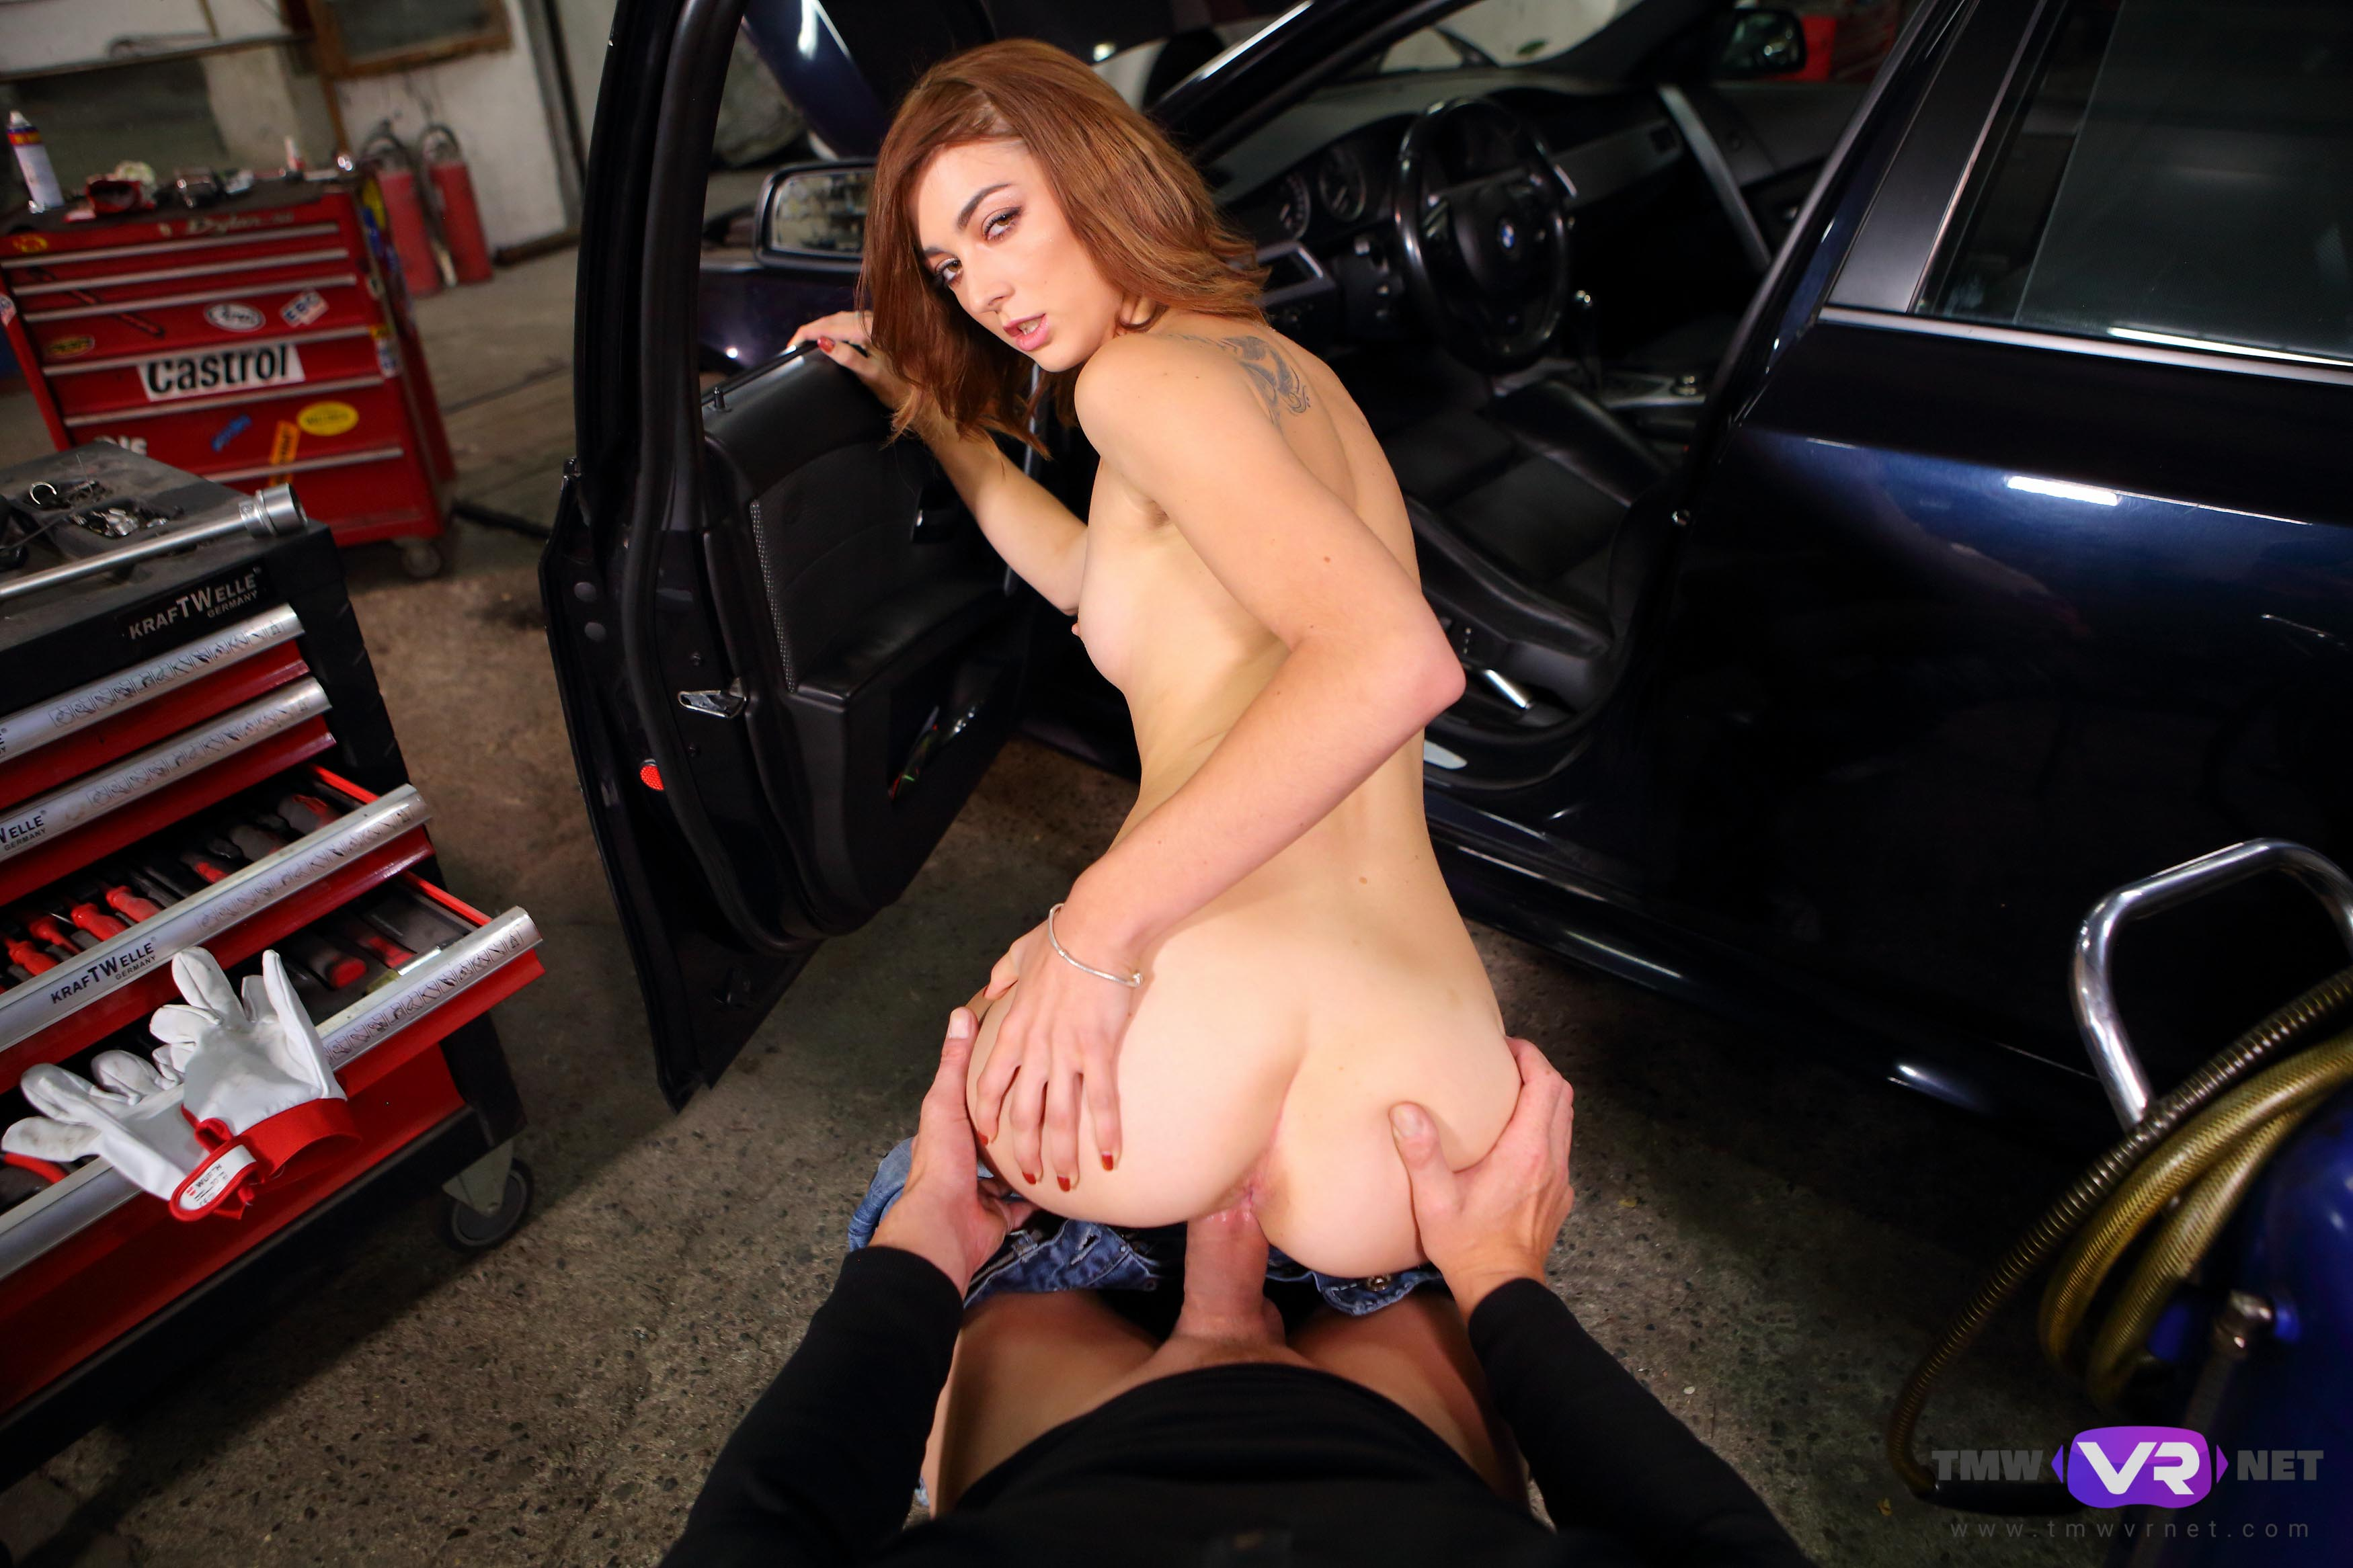 Hot Car Mechanic Offers Extra Sex Services - Tmwvrnet -4295